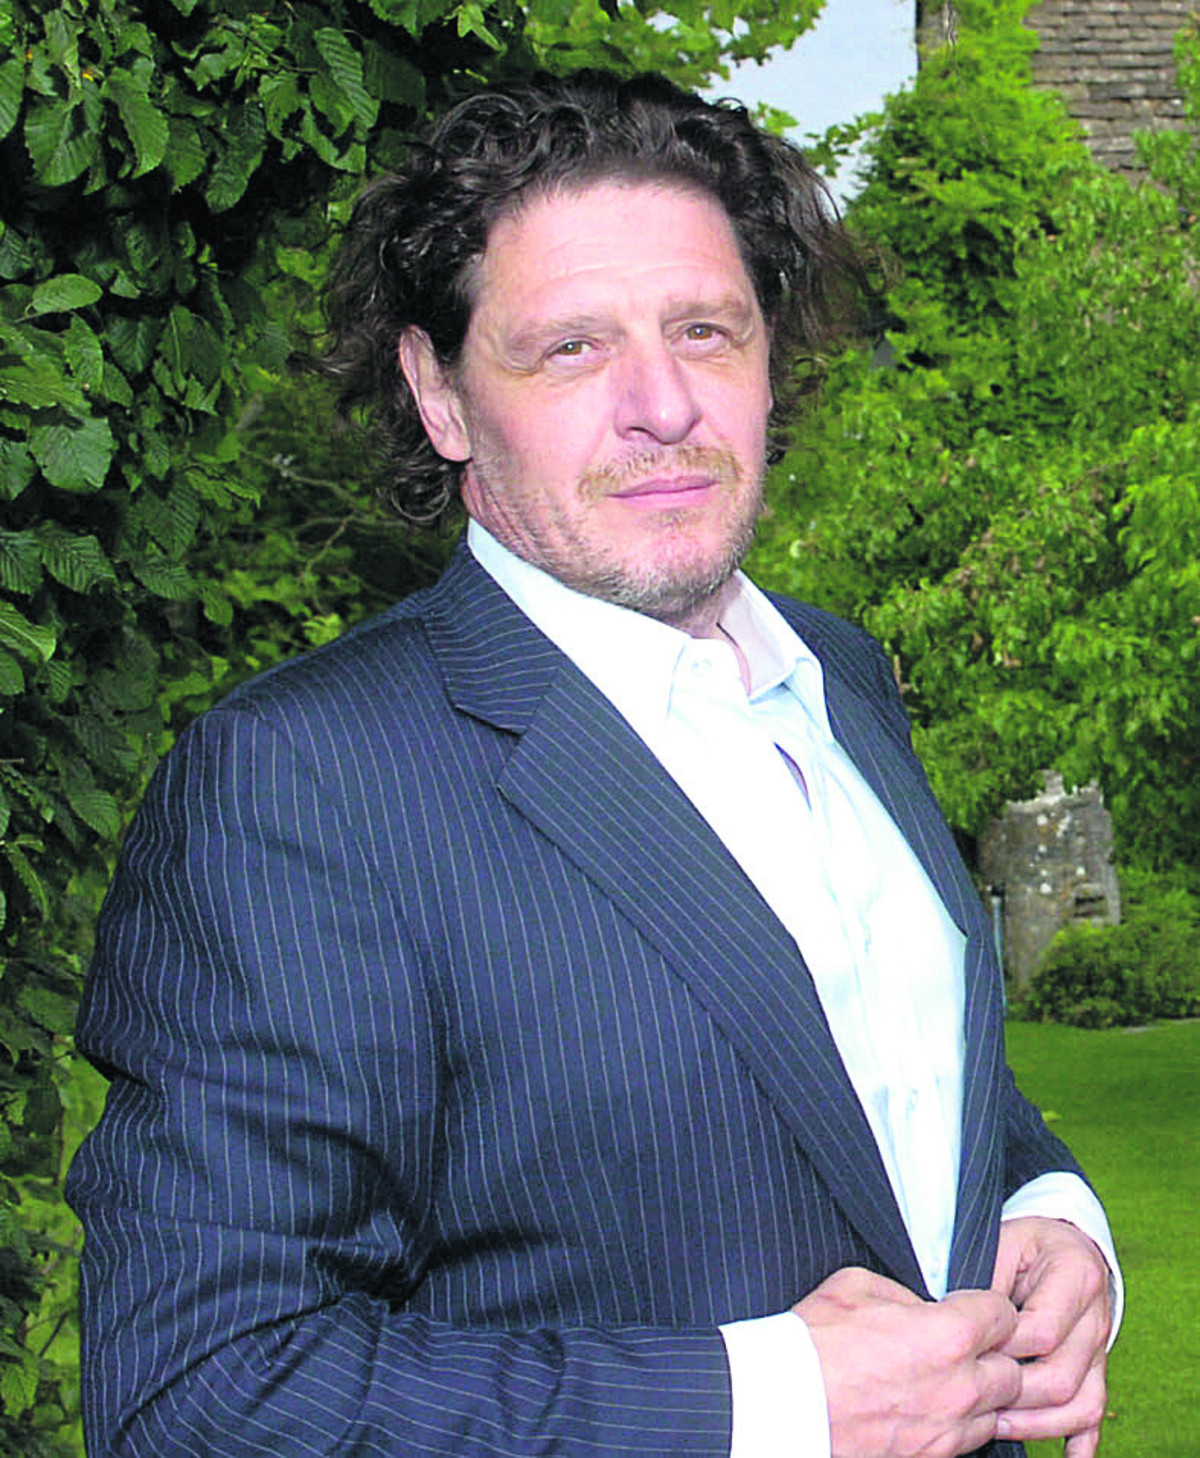 Marco Pierre White pictured in the grounds of the Pear Tree Inn by Trevor Porter